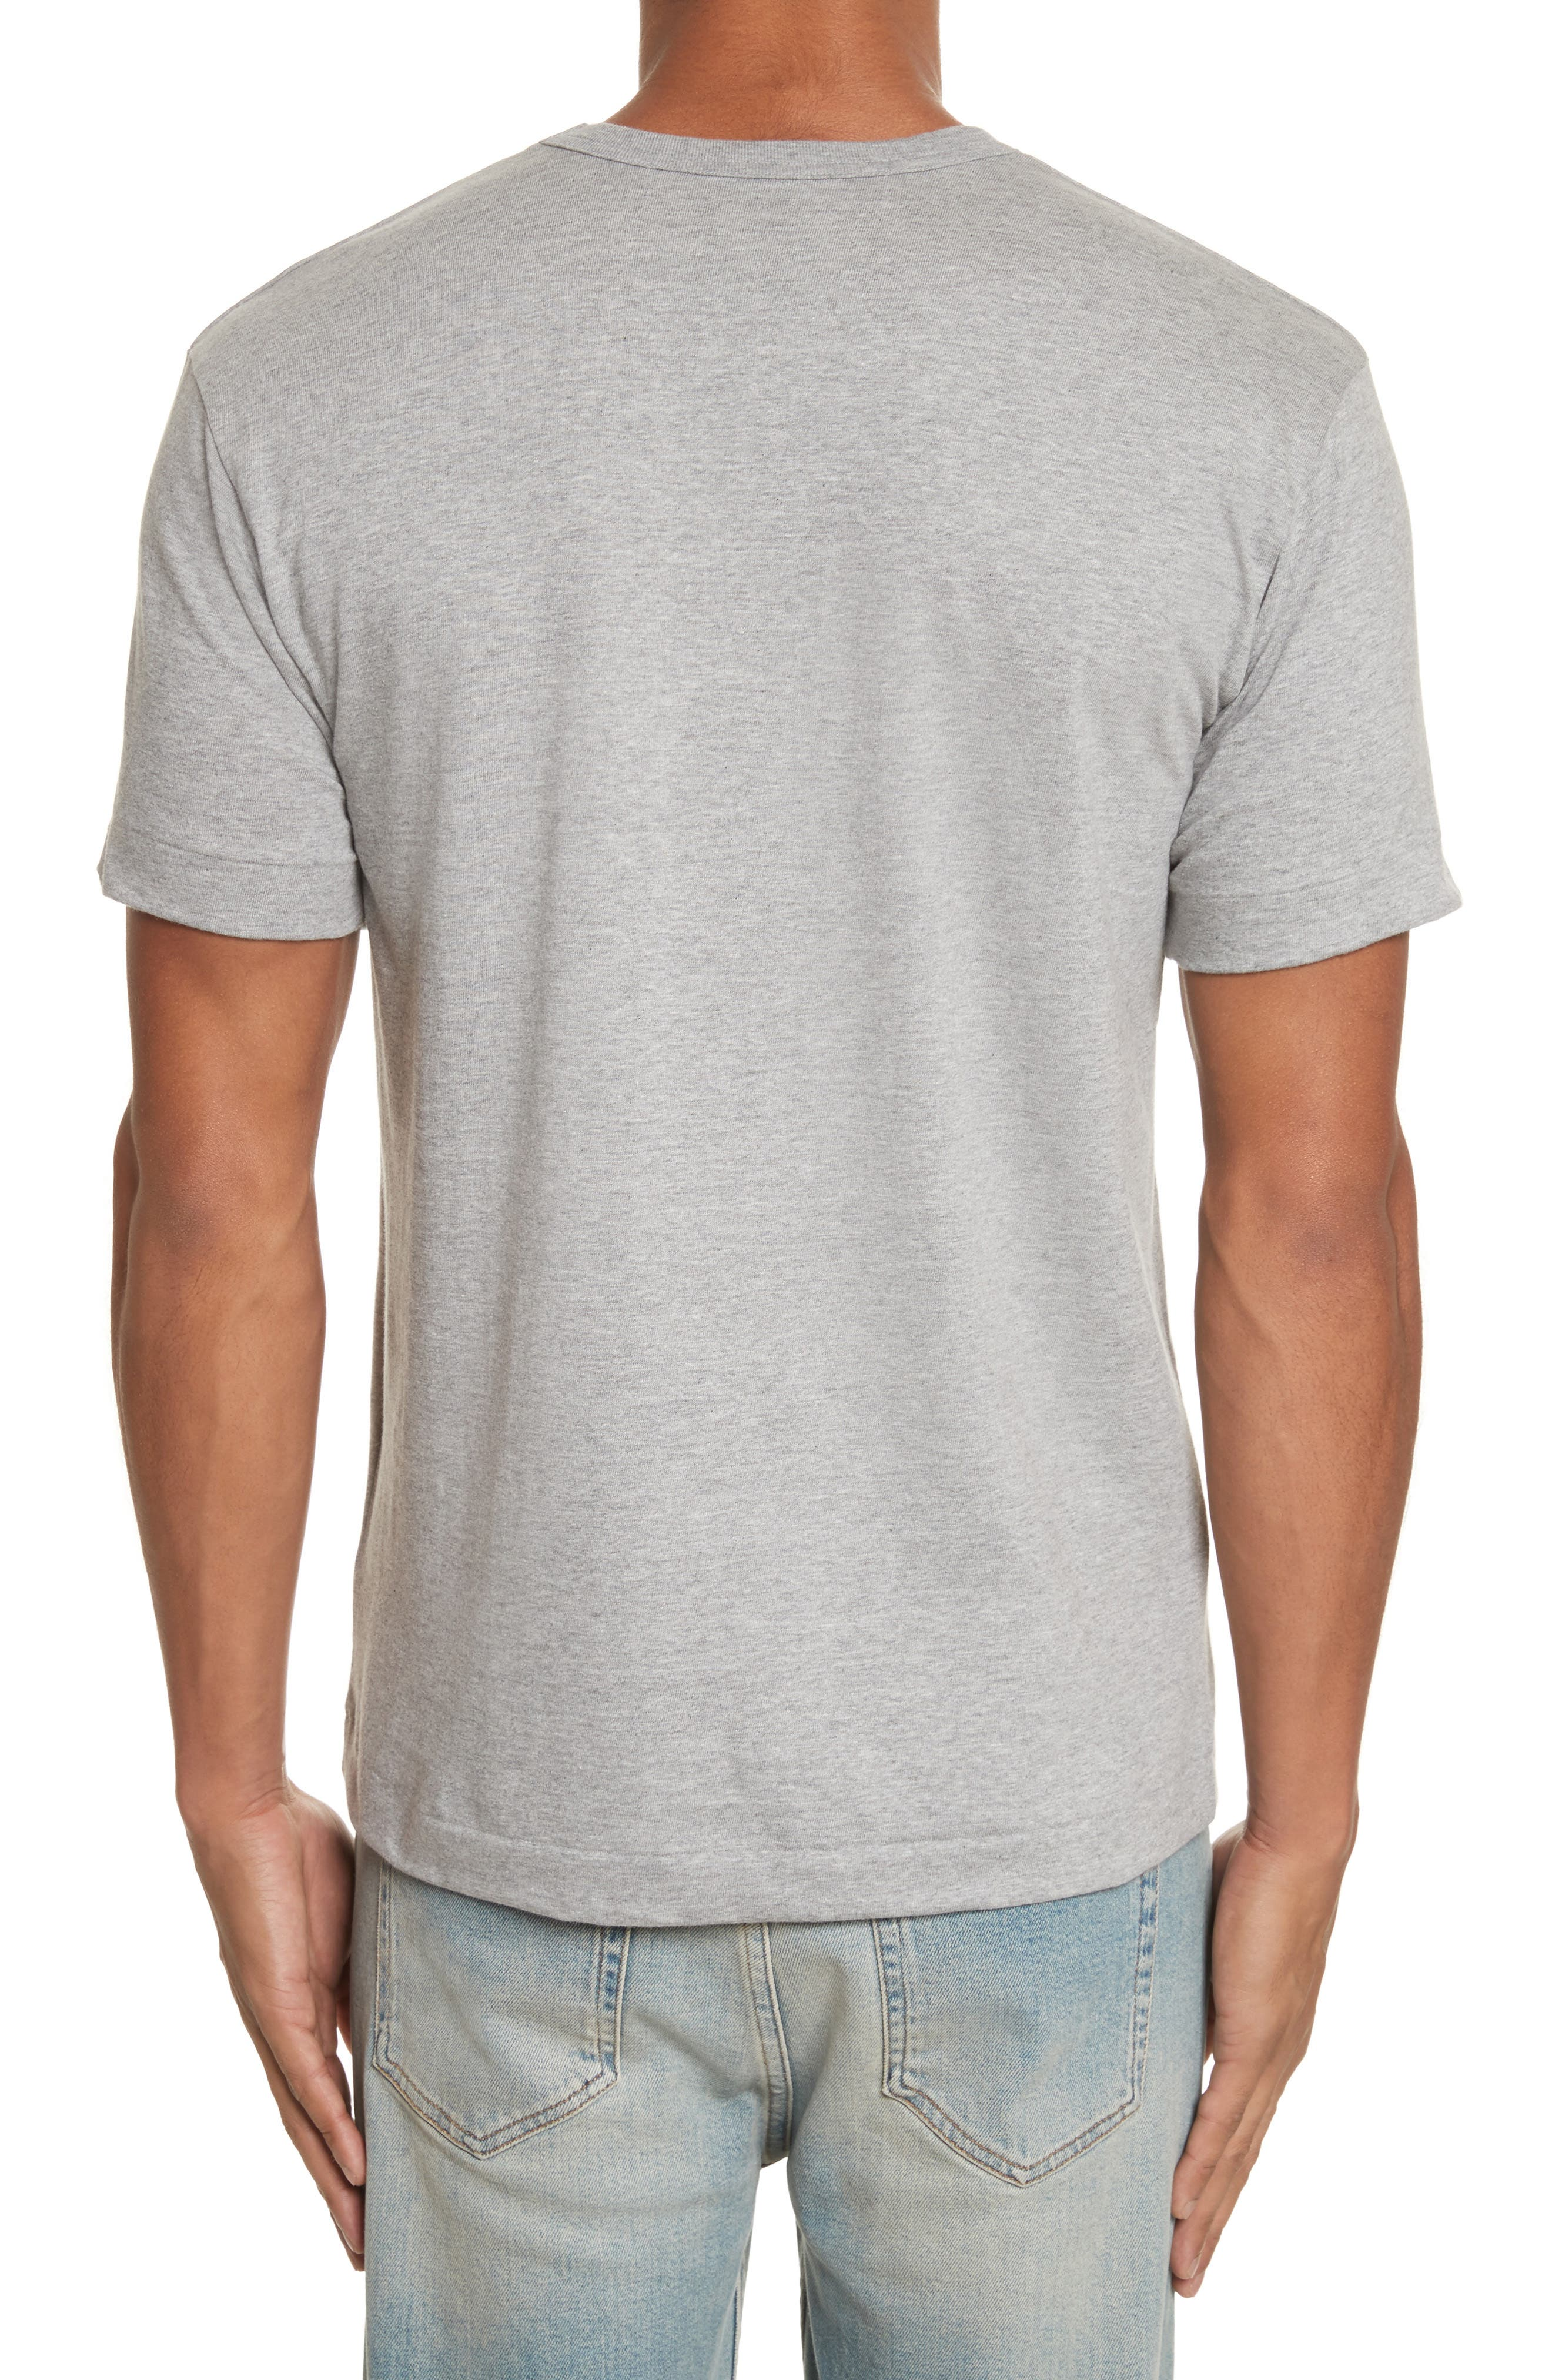 PLAY Upside Down Graphic T-Shirt,                             Alternate thumbnail 2, color,                             Grey